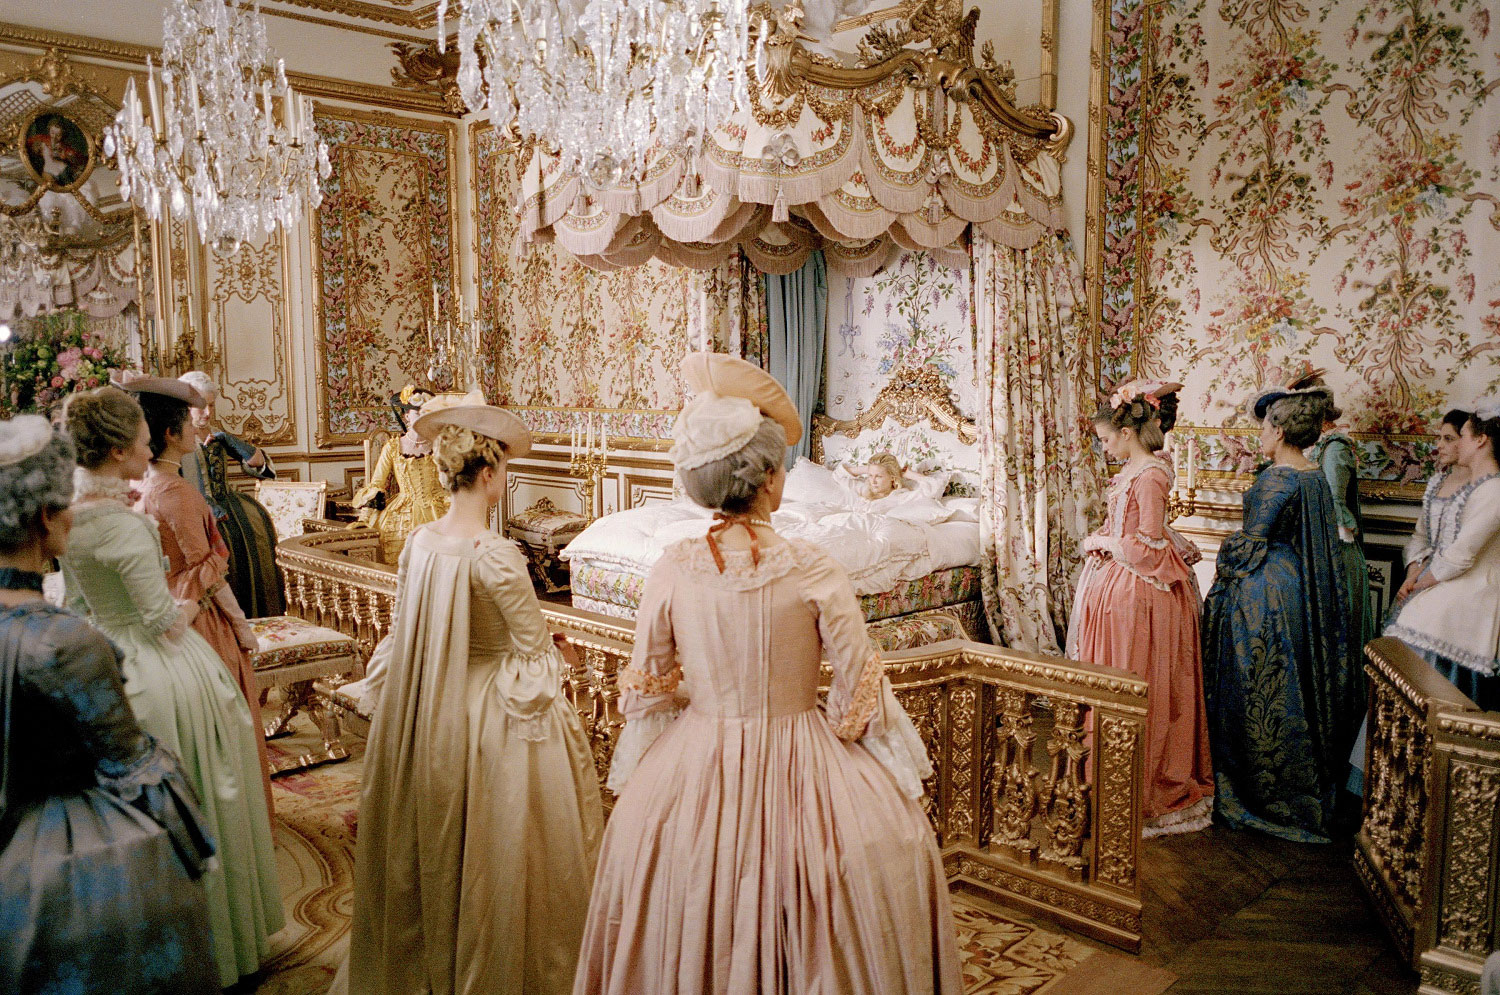 There can never be too much frou frou, particularly in  Marie Antoinette ! So opulent, so French, so chic at the Palace of Versailles.